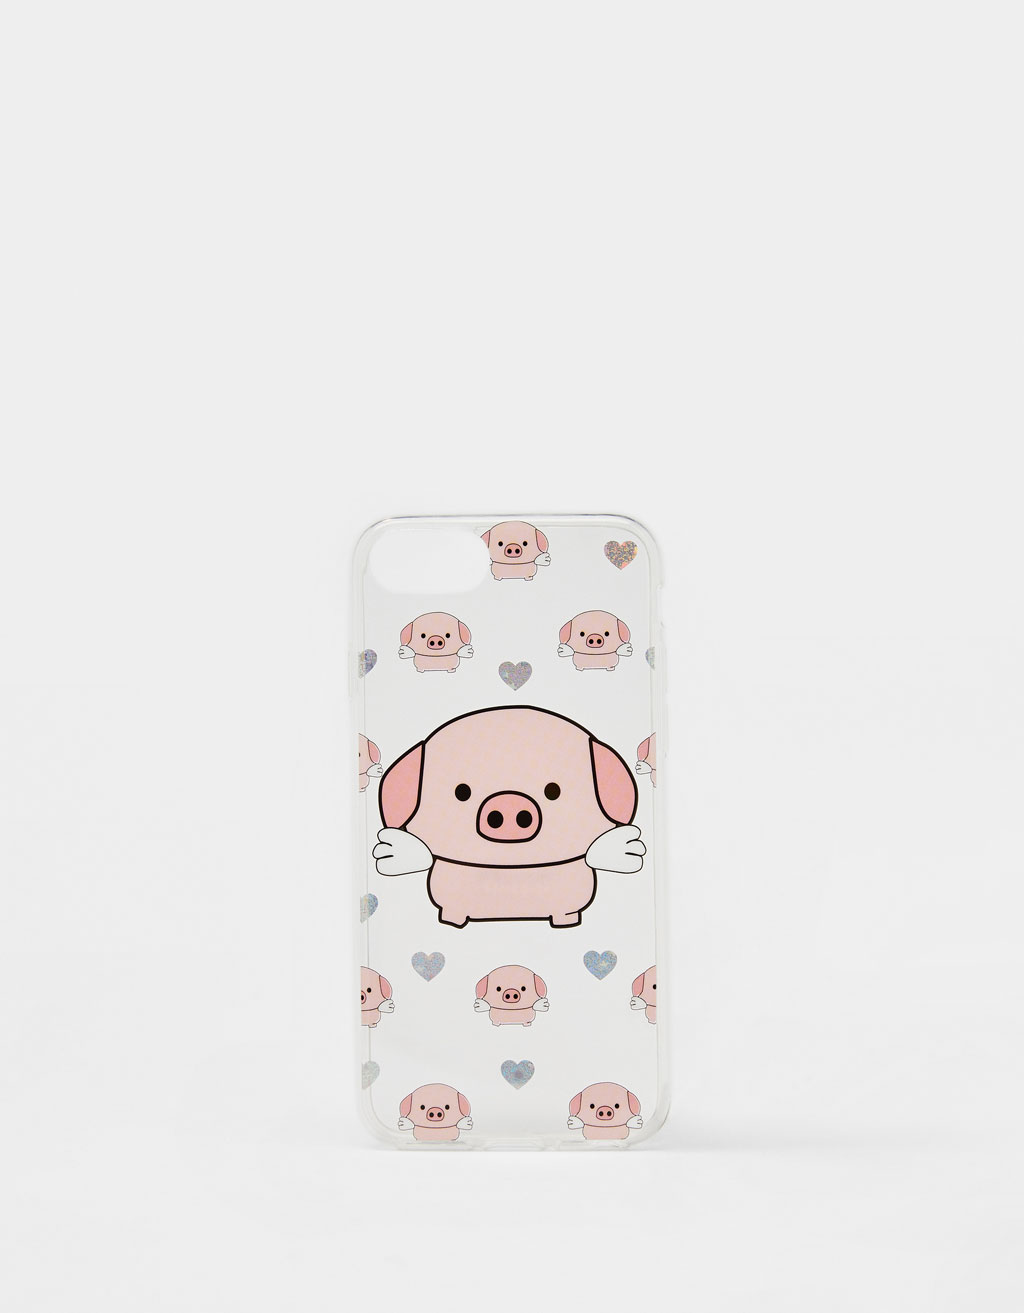 Carcassa Little Pig iPhone 6/6s/7/8